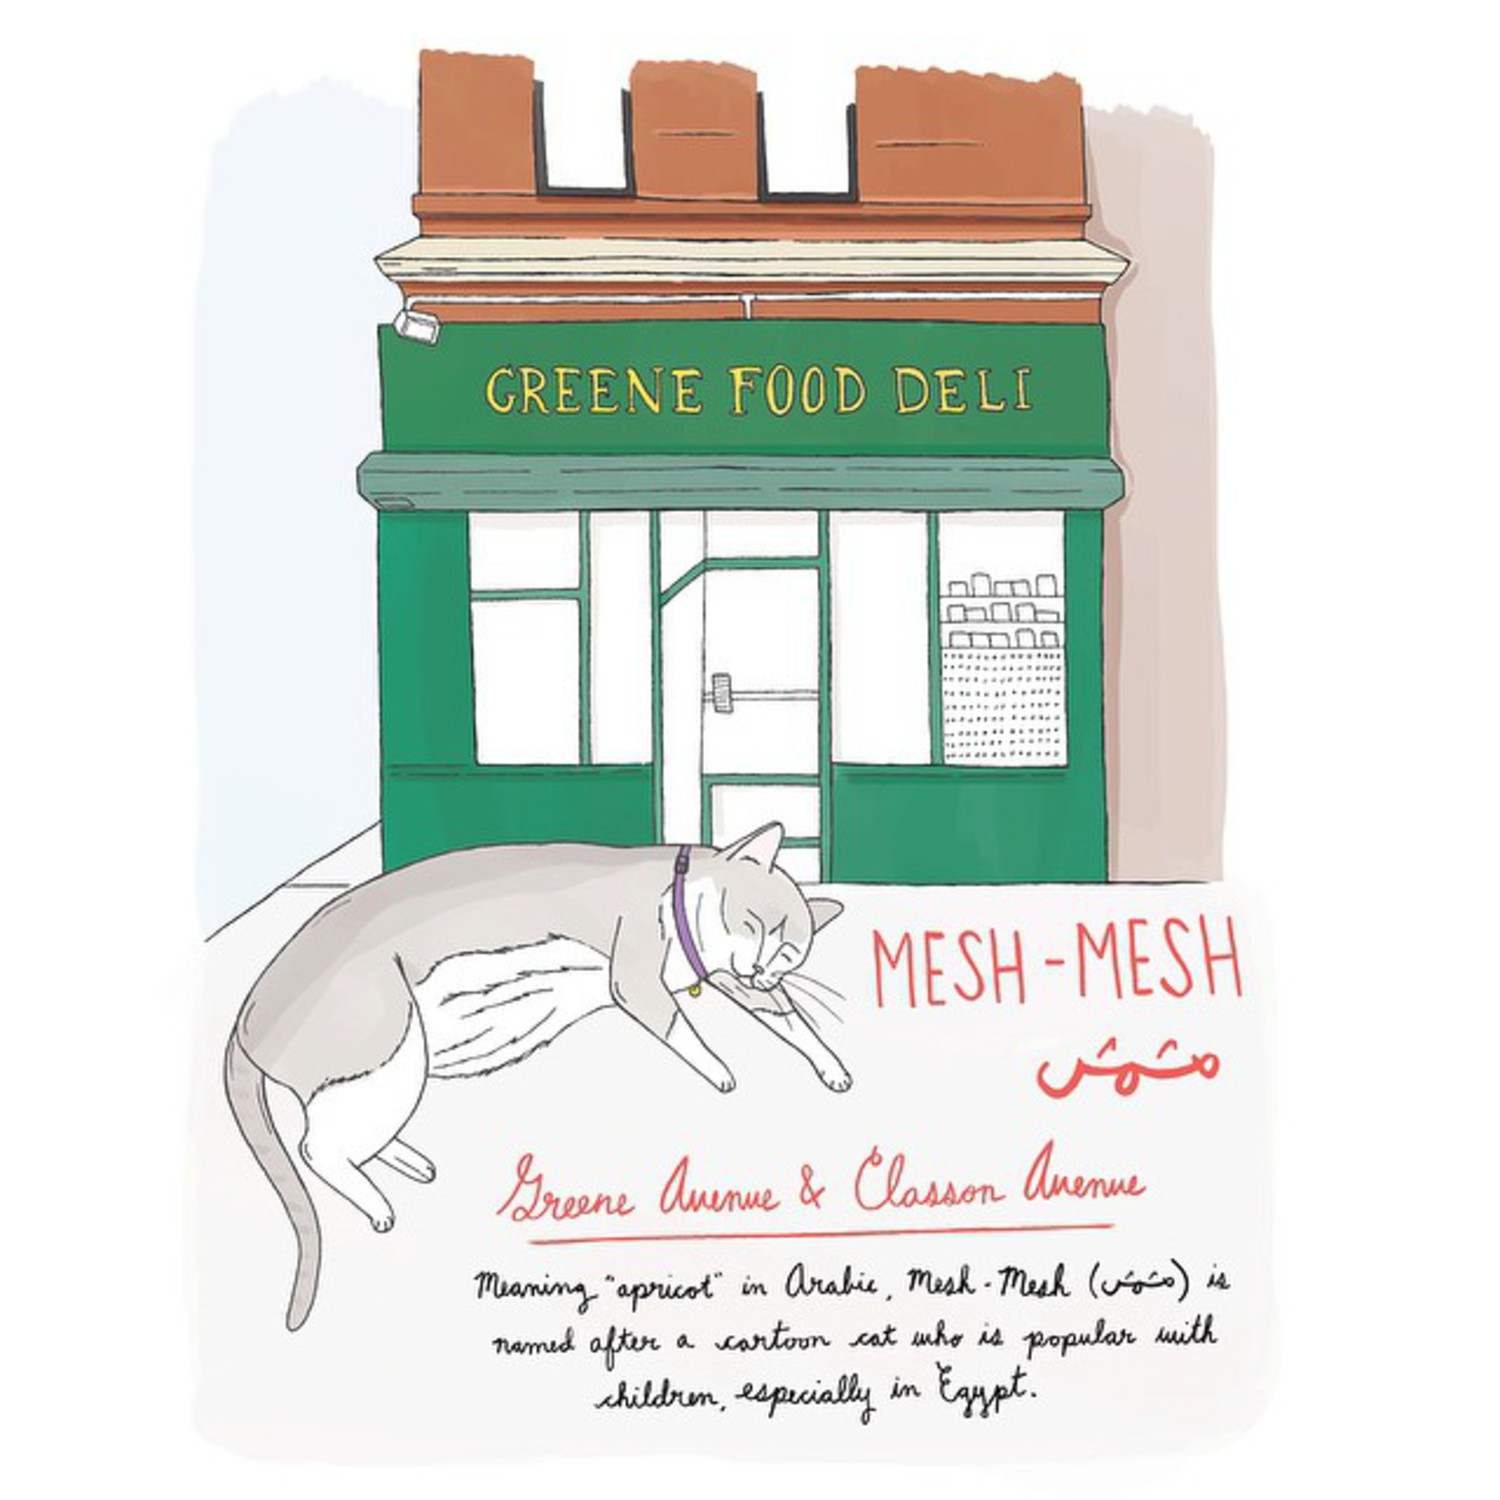 Mesh-Mesh // Clinton Hill, Brooklyn  #brooklynbodegacats #clintonhill #brooklyn #bodegacatsofinstagram #bodegacats #illustration